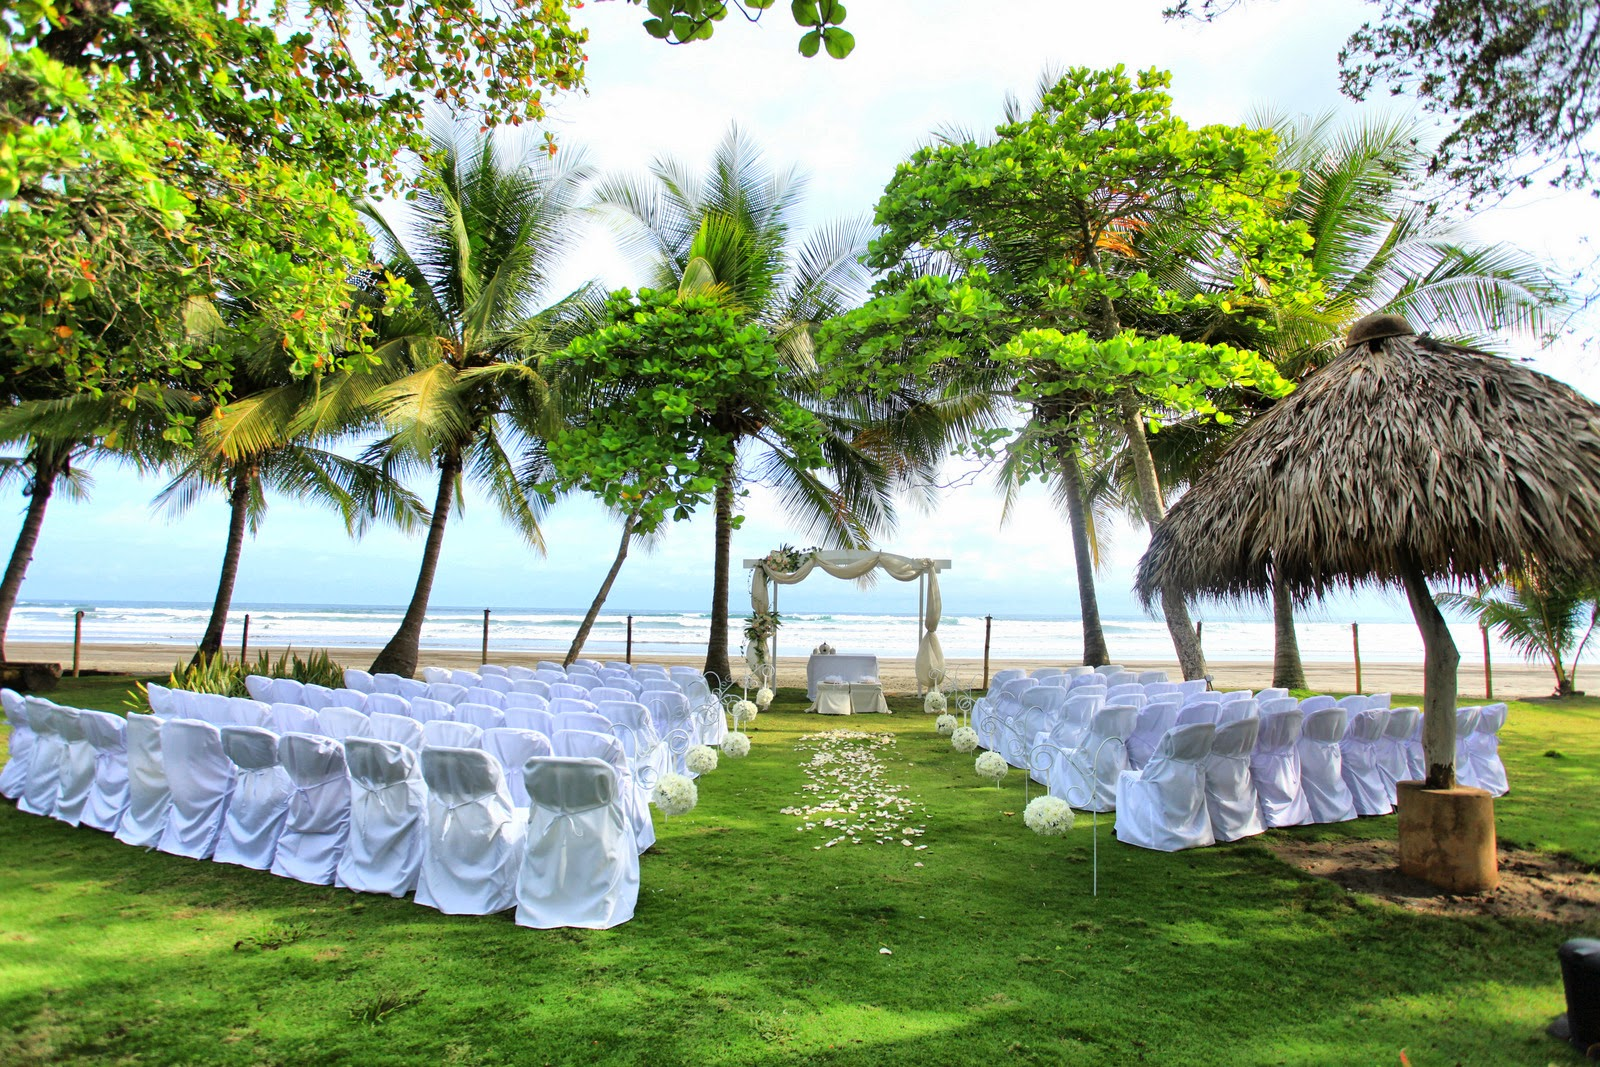 Costa Rica Is One Of The Most Amazingly Beautiful Locations In World To Have A Perfect Destination Wedding Let Us Create Your Dreams